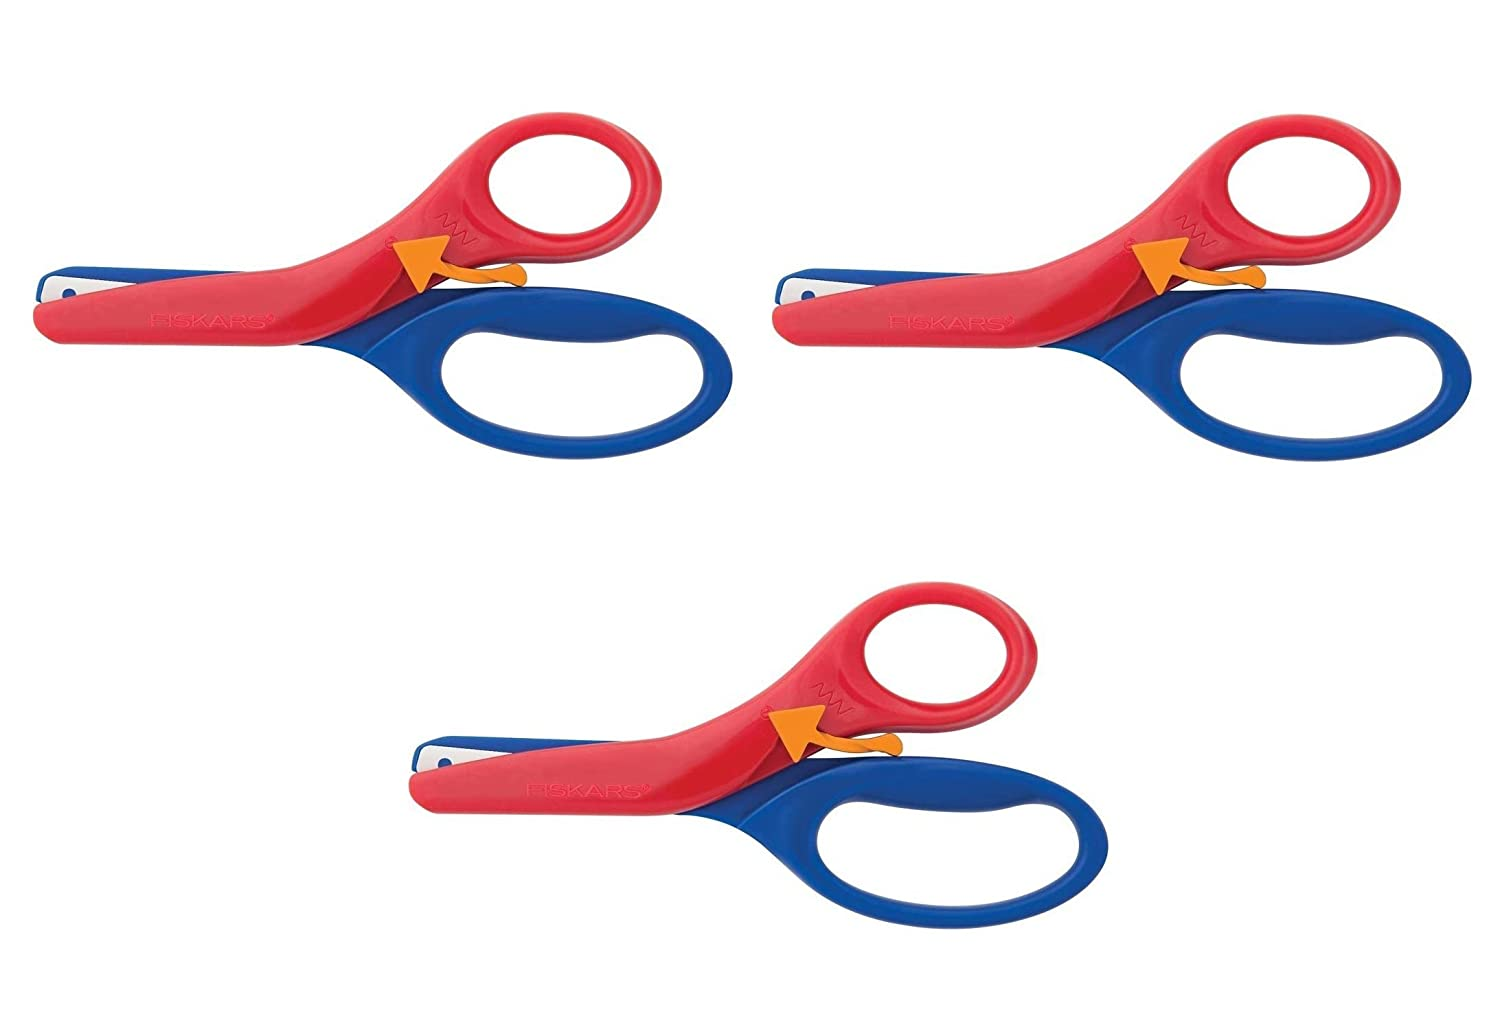 Fiskars 194900-1001 Pre-School Training Scissors, Color Received May Vary (3)